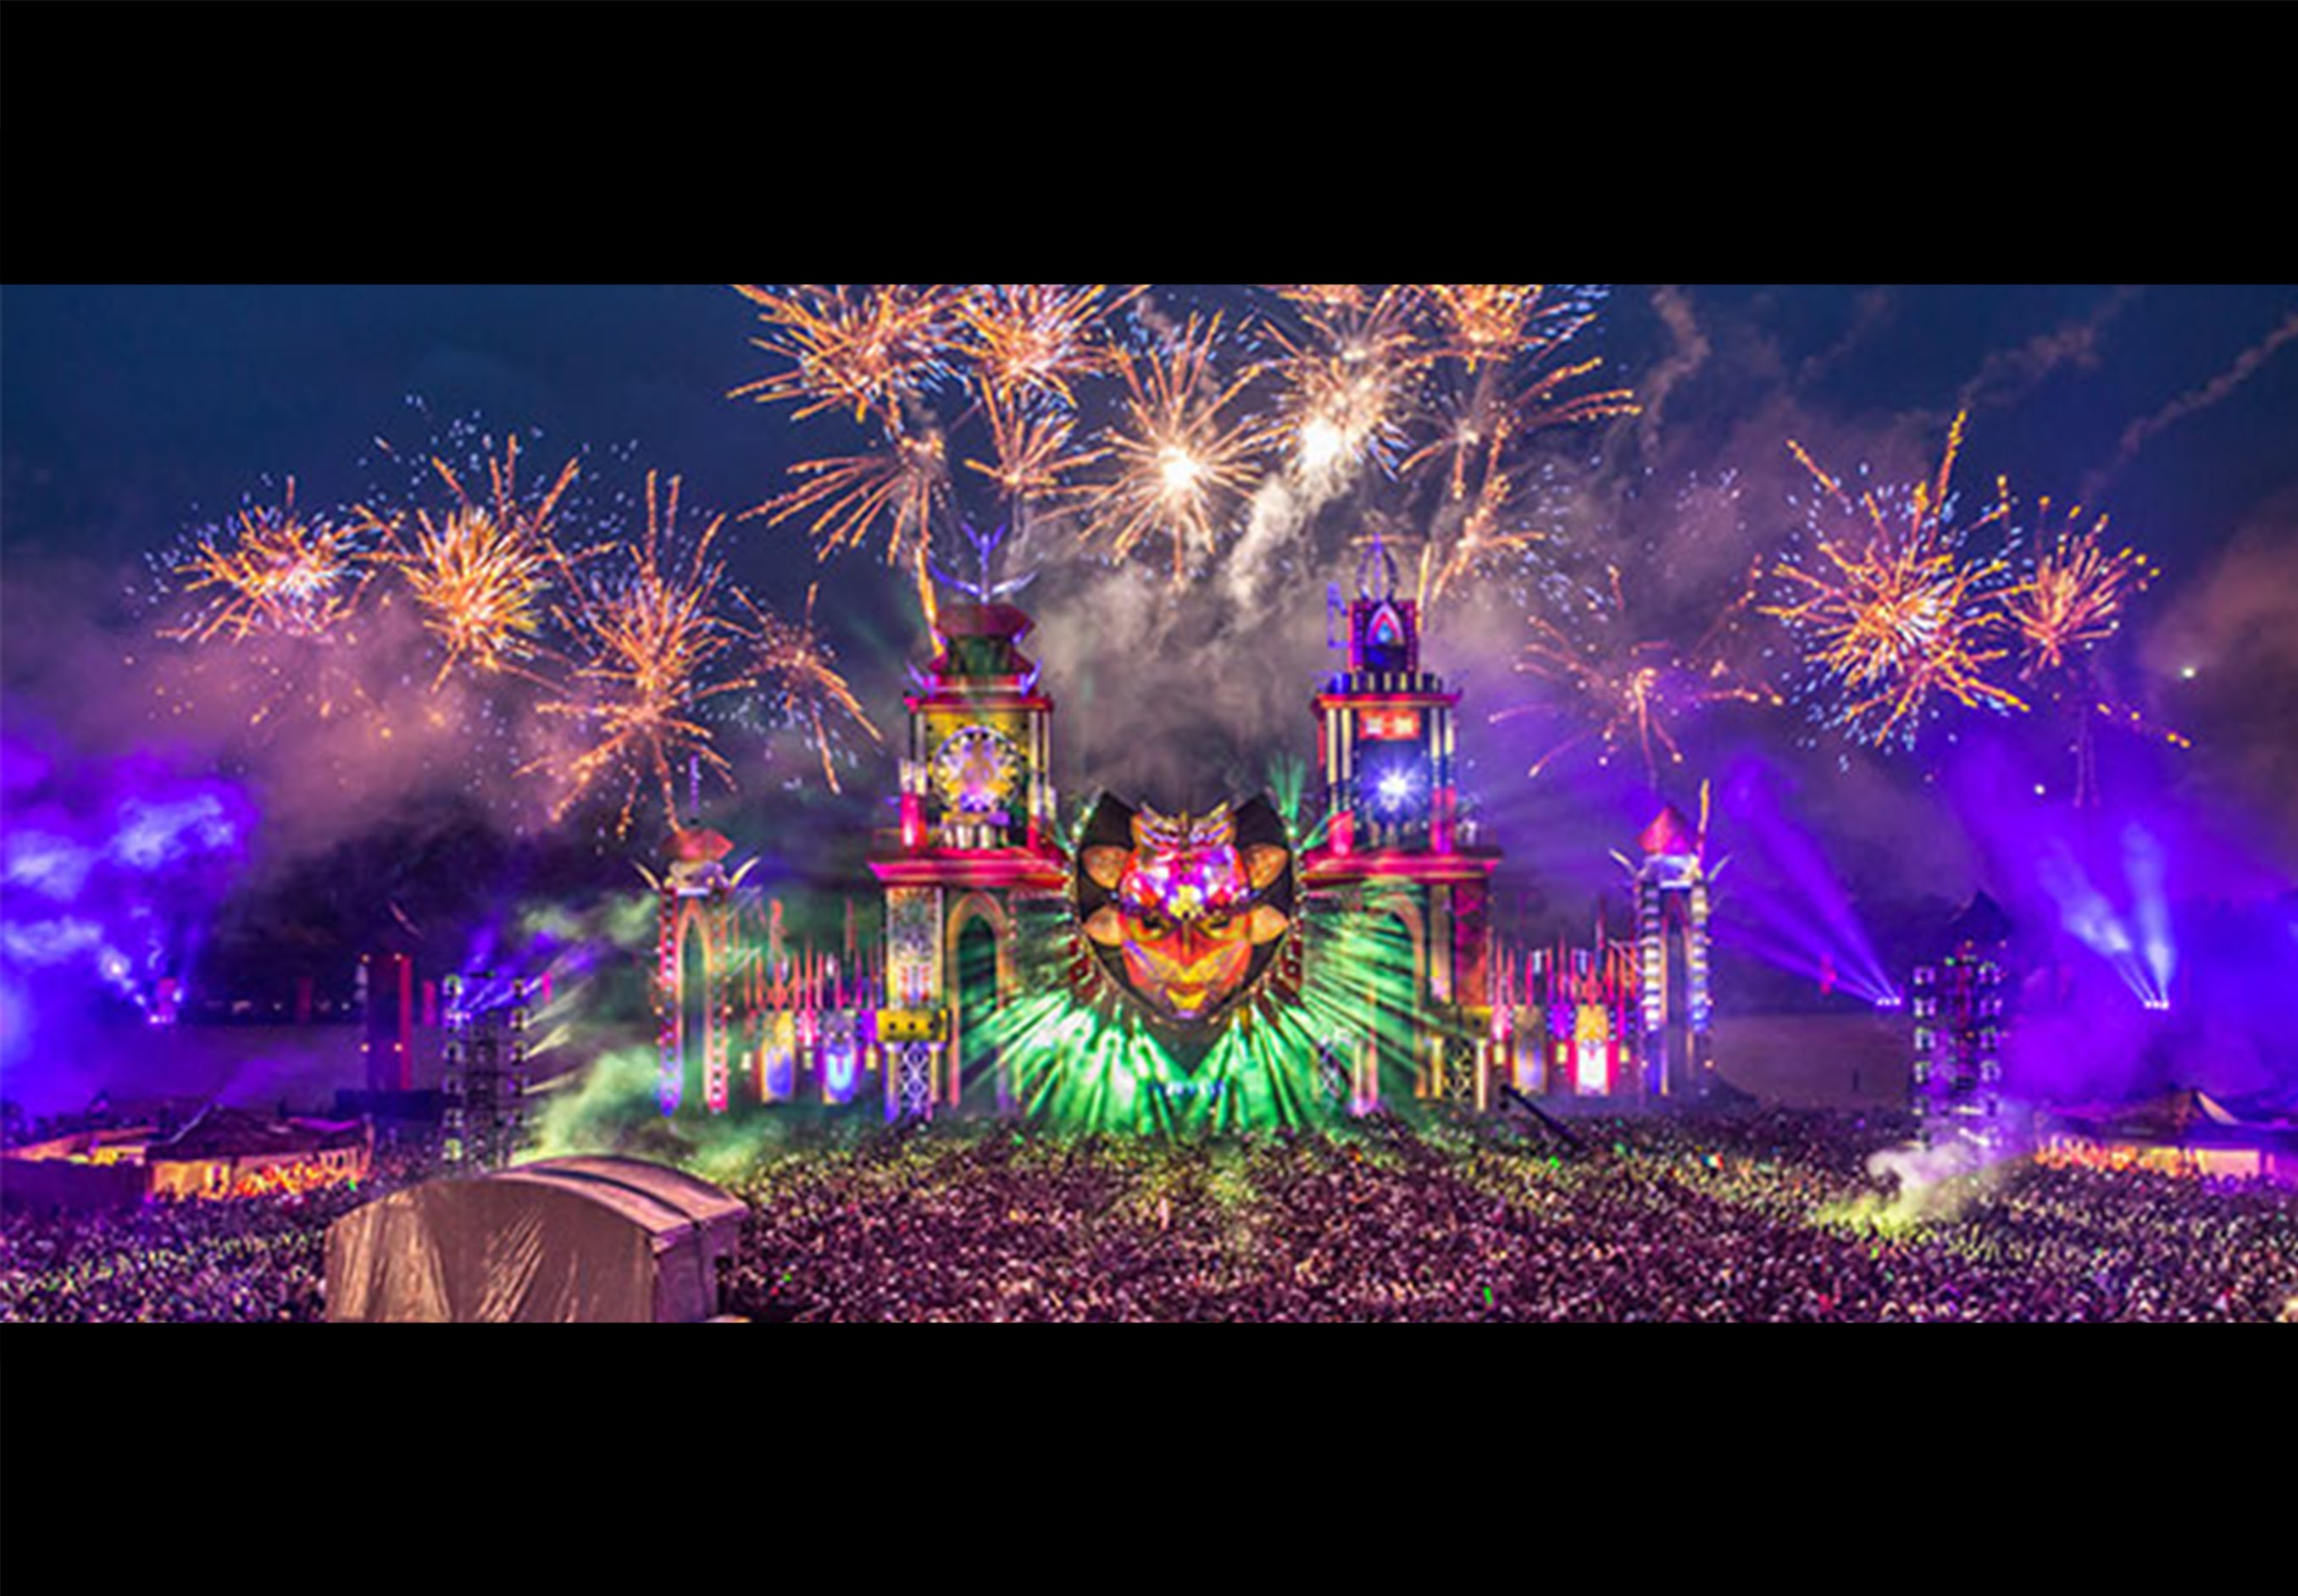 EDM wallpapers, Music, HQ EDM pictures | 4K Wallpapers 2019